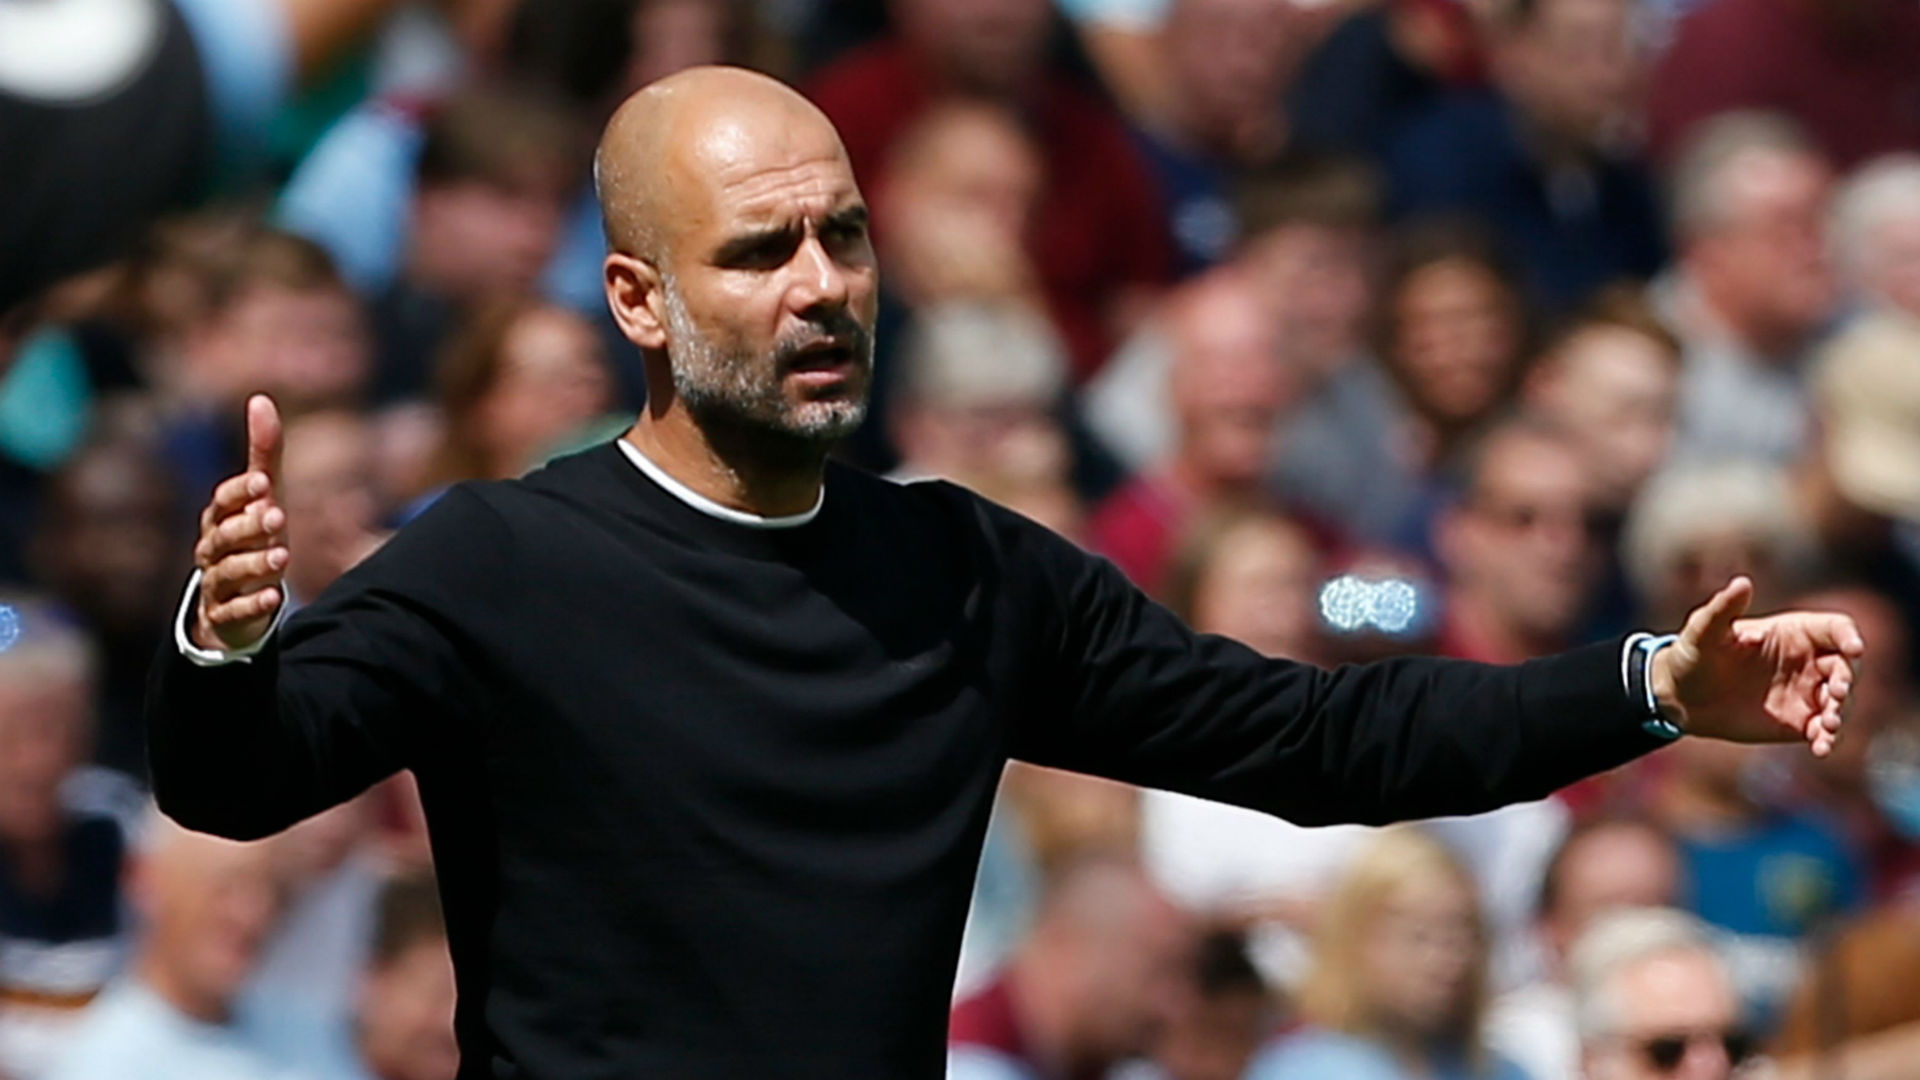 Pep Guardiola mécontent de la performance de Manchester City malgré le 5-0